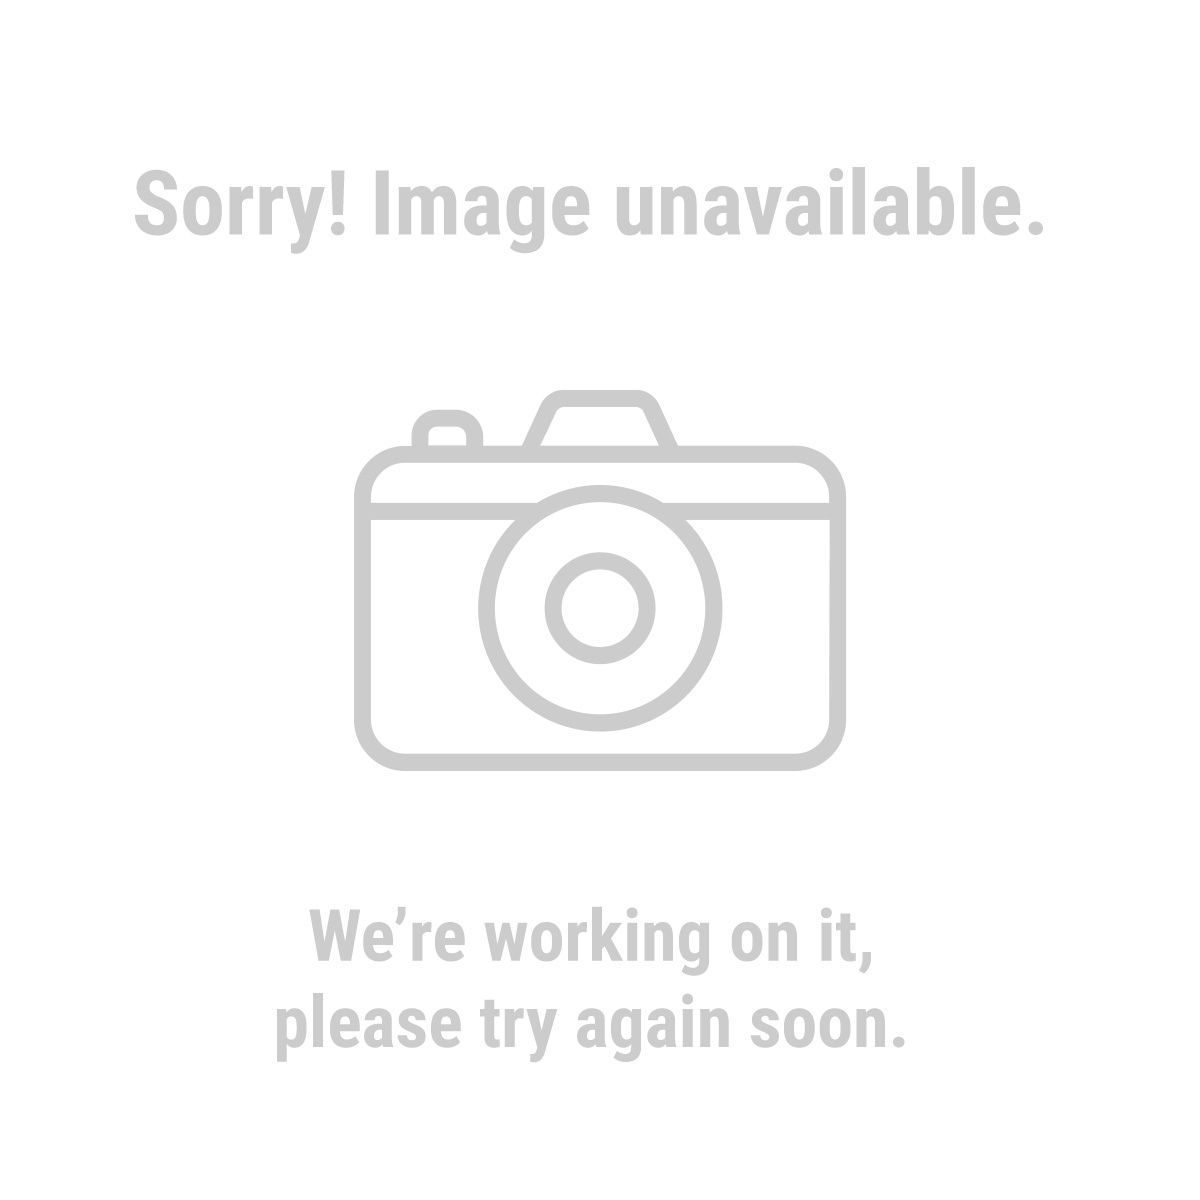 Haul-Master 44649 1000 Lb. Steel Loading Ramps, Set of Two